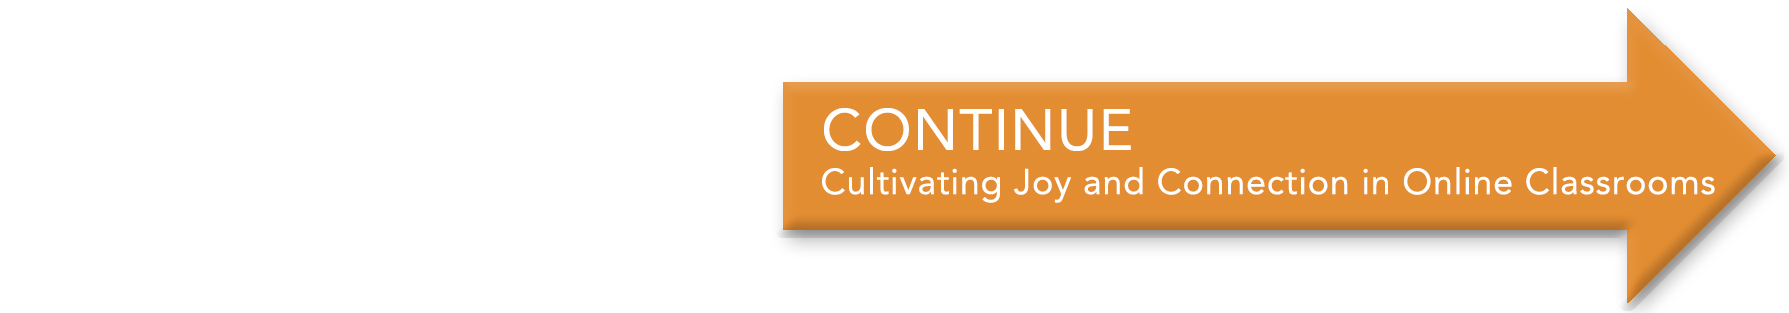 Orange arrow icon that links to the section on cultivating joy